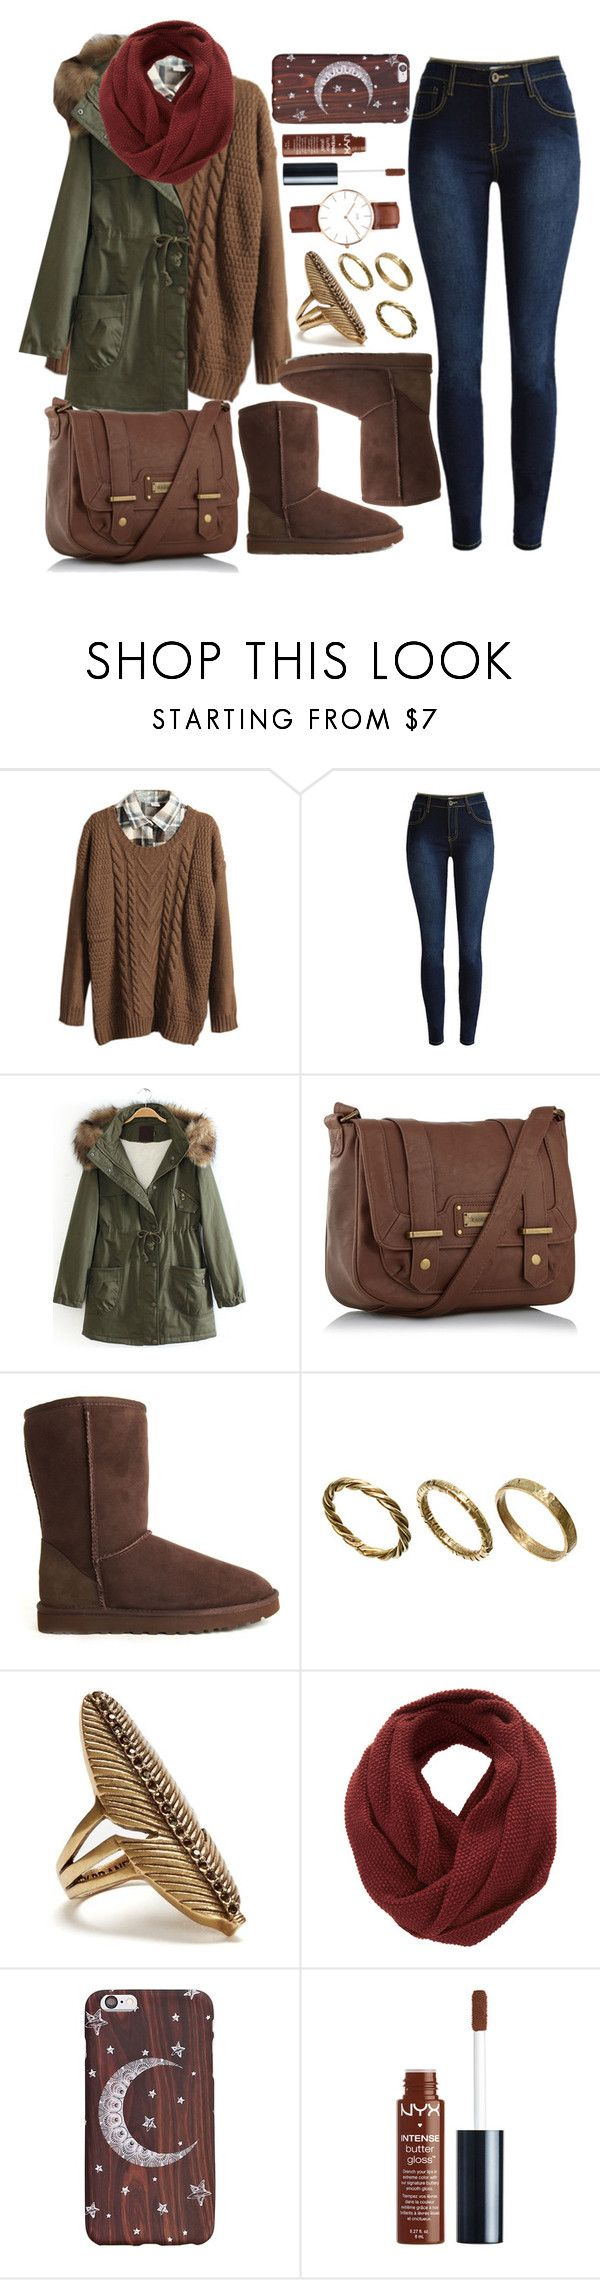 """Untitled #4215"" by natalyasidunova ❤ liked on Polyvore featuring Retrò, kangol, UGG Australia, Made, Lucky Brand, SELECTED, NYX and Daniel Wellington"